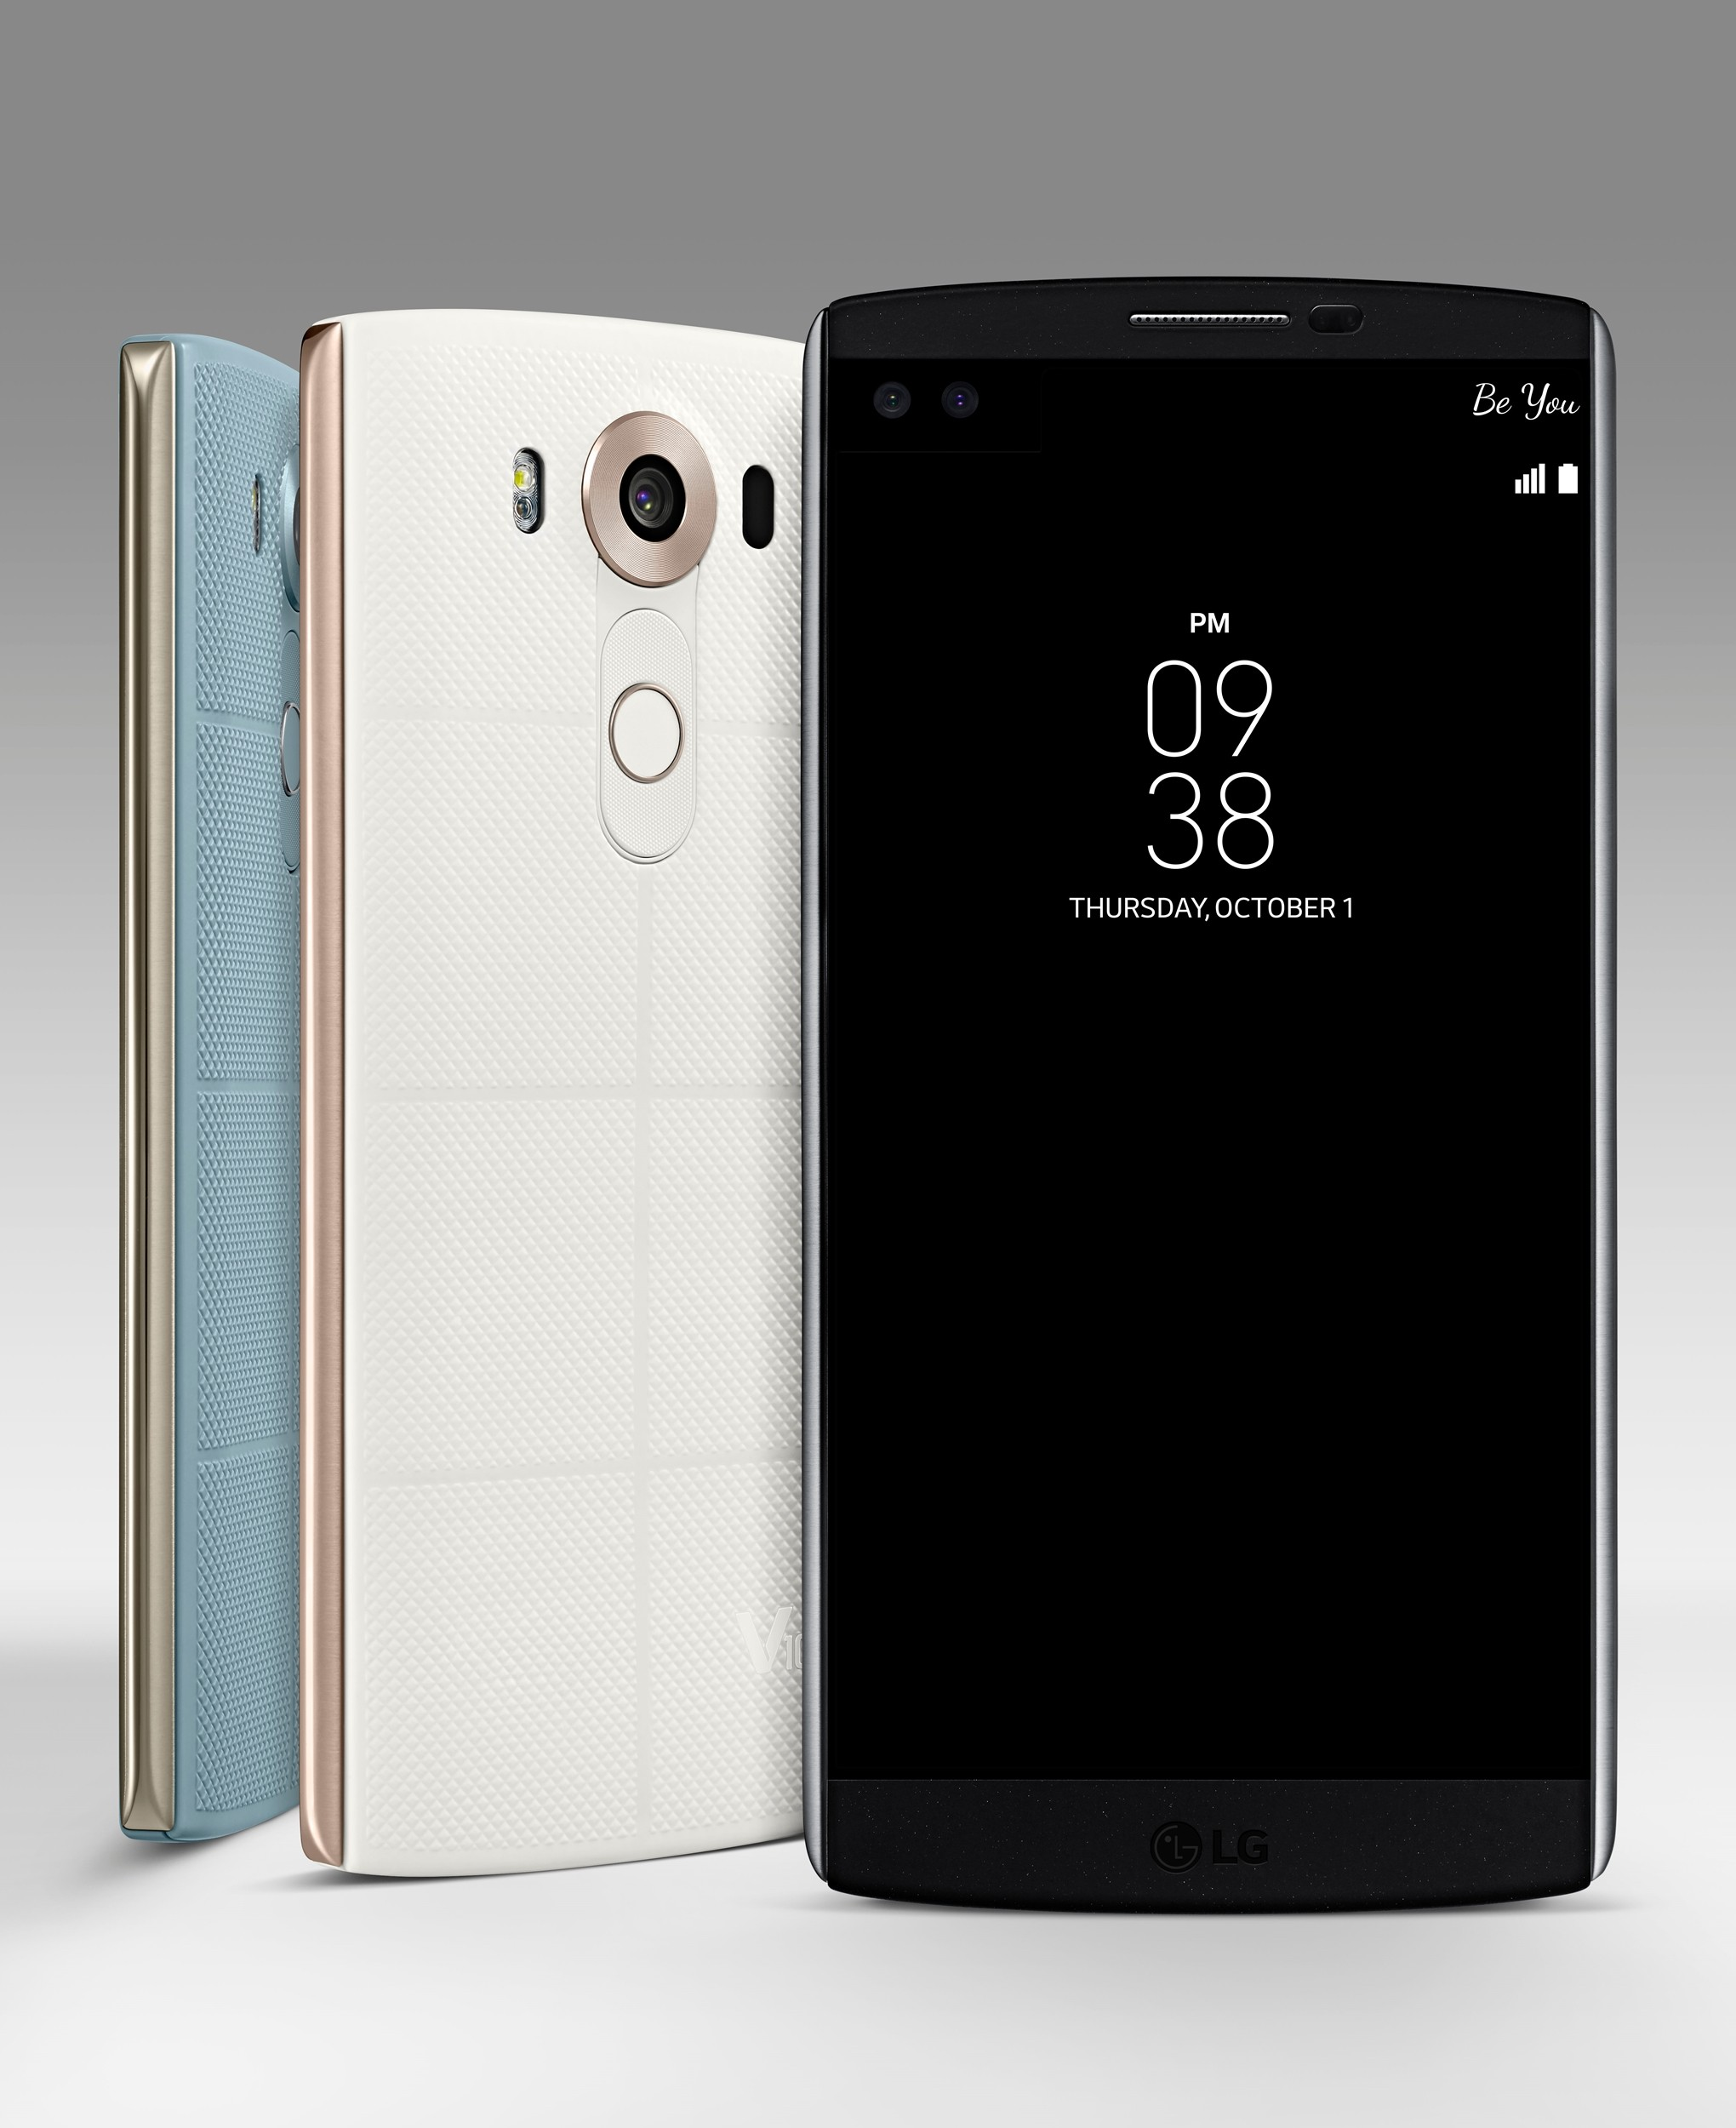 The front view of the LG V10 in Space Black and the back view of the same device in Luxe White and Ocean Blue